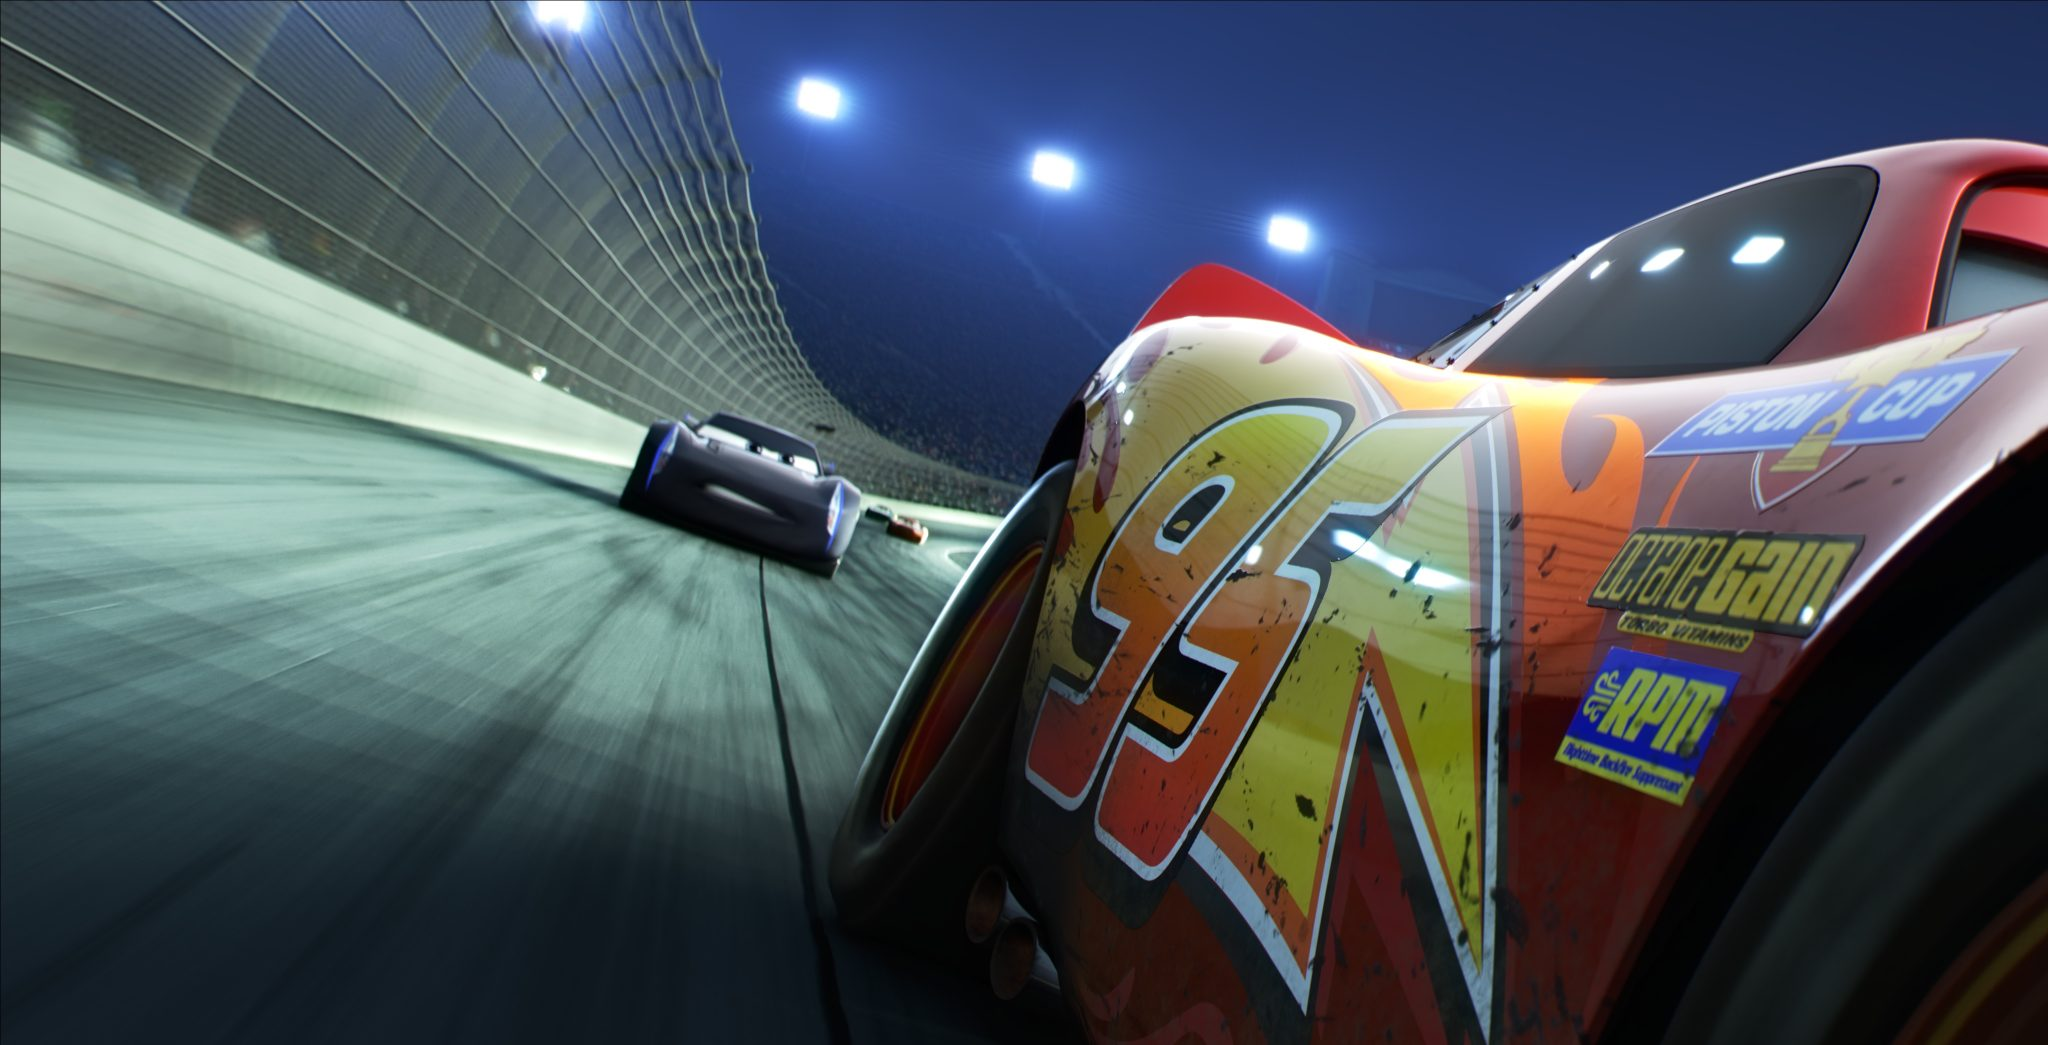 """REAR VIEW — The legendary #95 may be leading the pack, but the high-tech Next Gen racers are closing in fast. Directed by Brian Fee and produced by Kevin Reher, """"Cars 3"""" cruises into theaters on June 16, 2017. ©2016 Disney•Pixar. All Rights Reserved."""